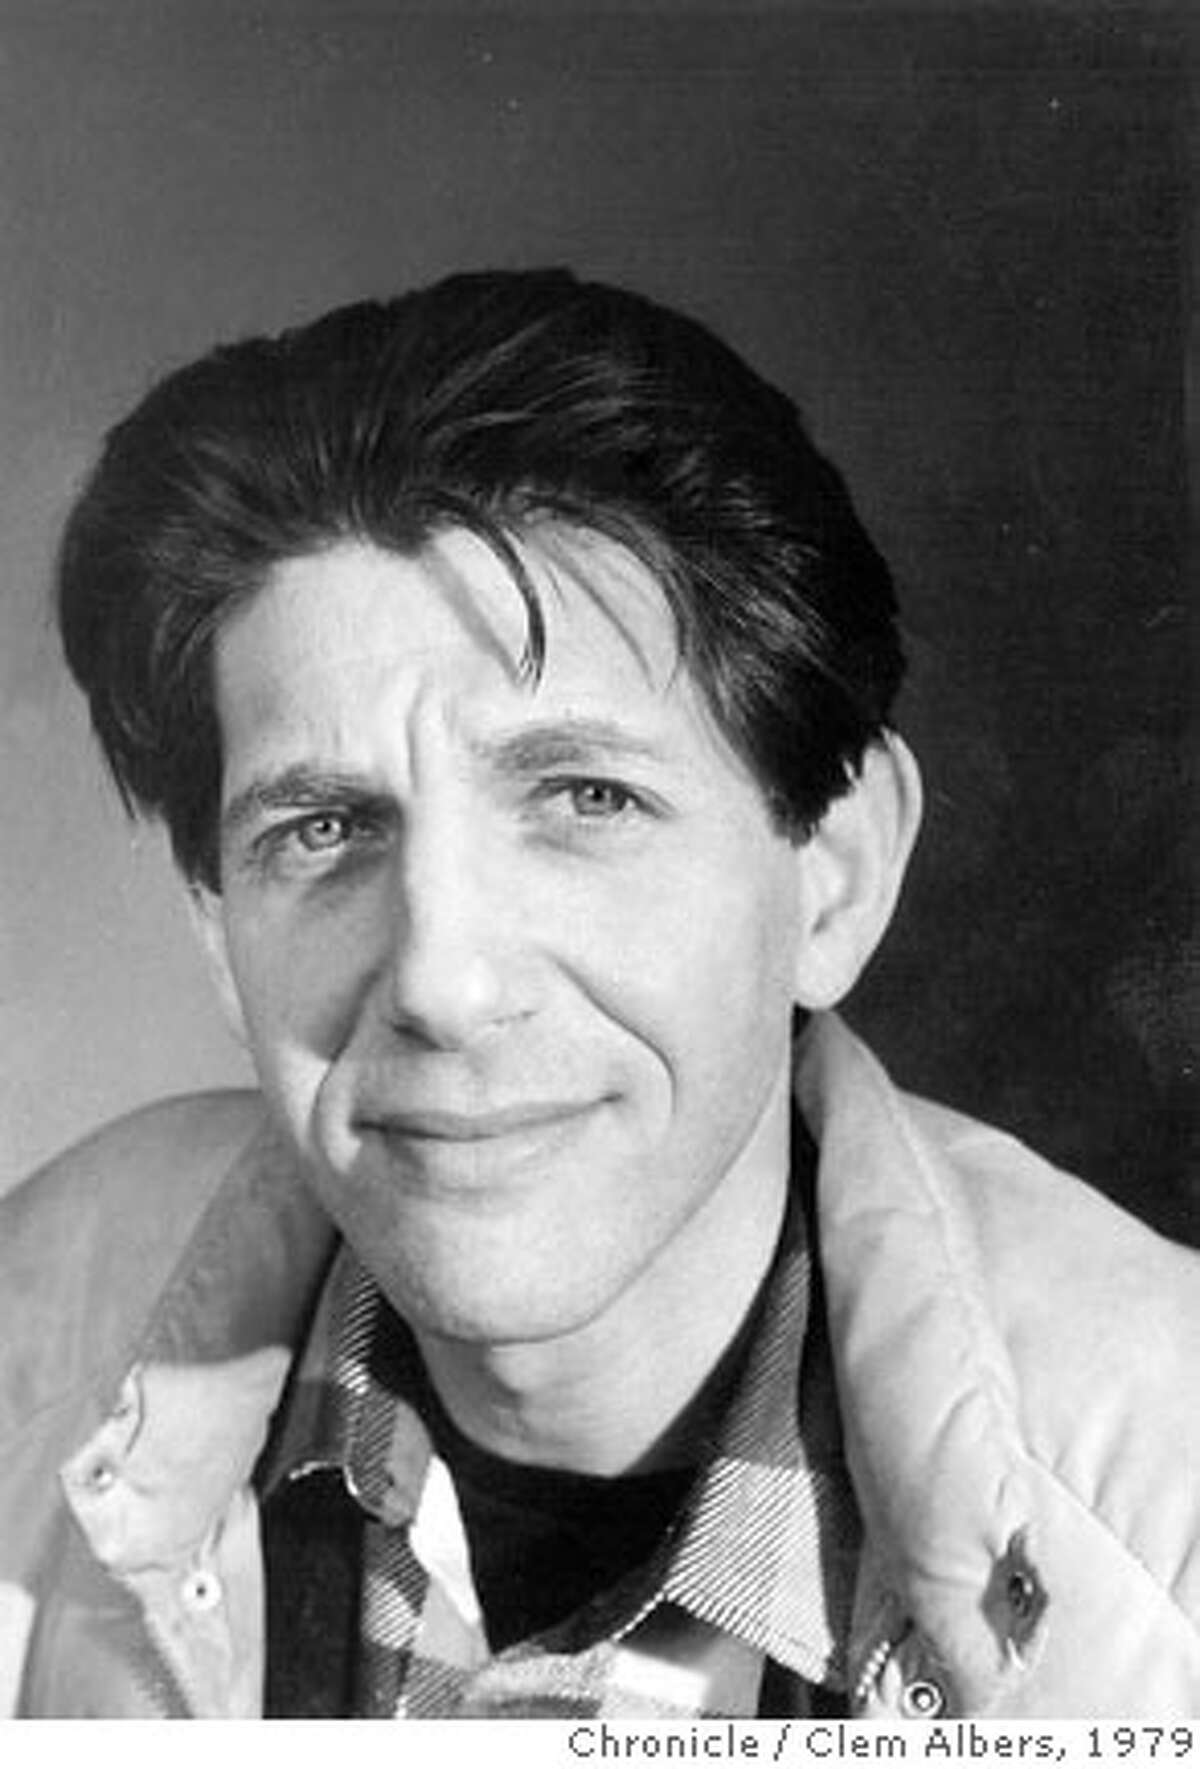 February 1, 1979 - Actor Peter Coyote Clem Albers/ Chronicle File Photo 1978